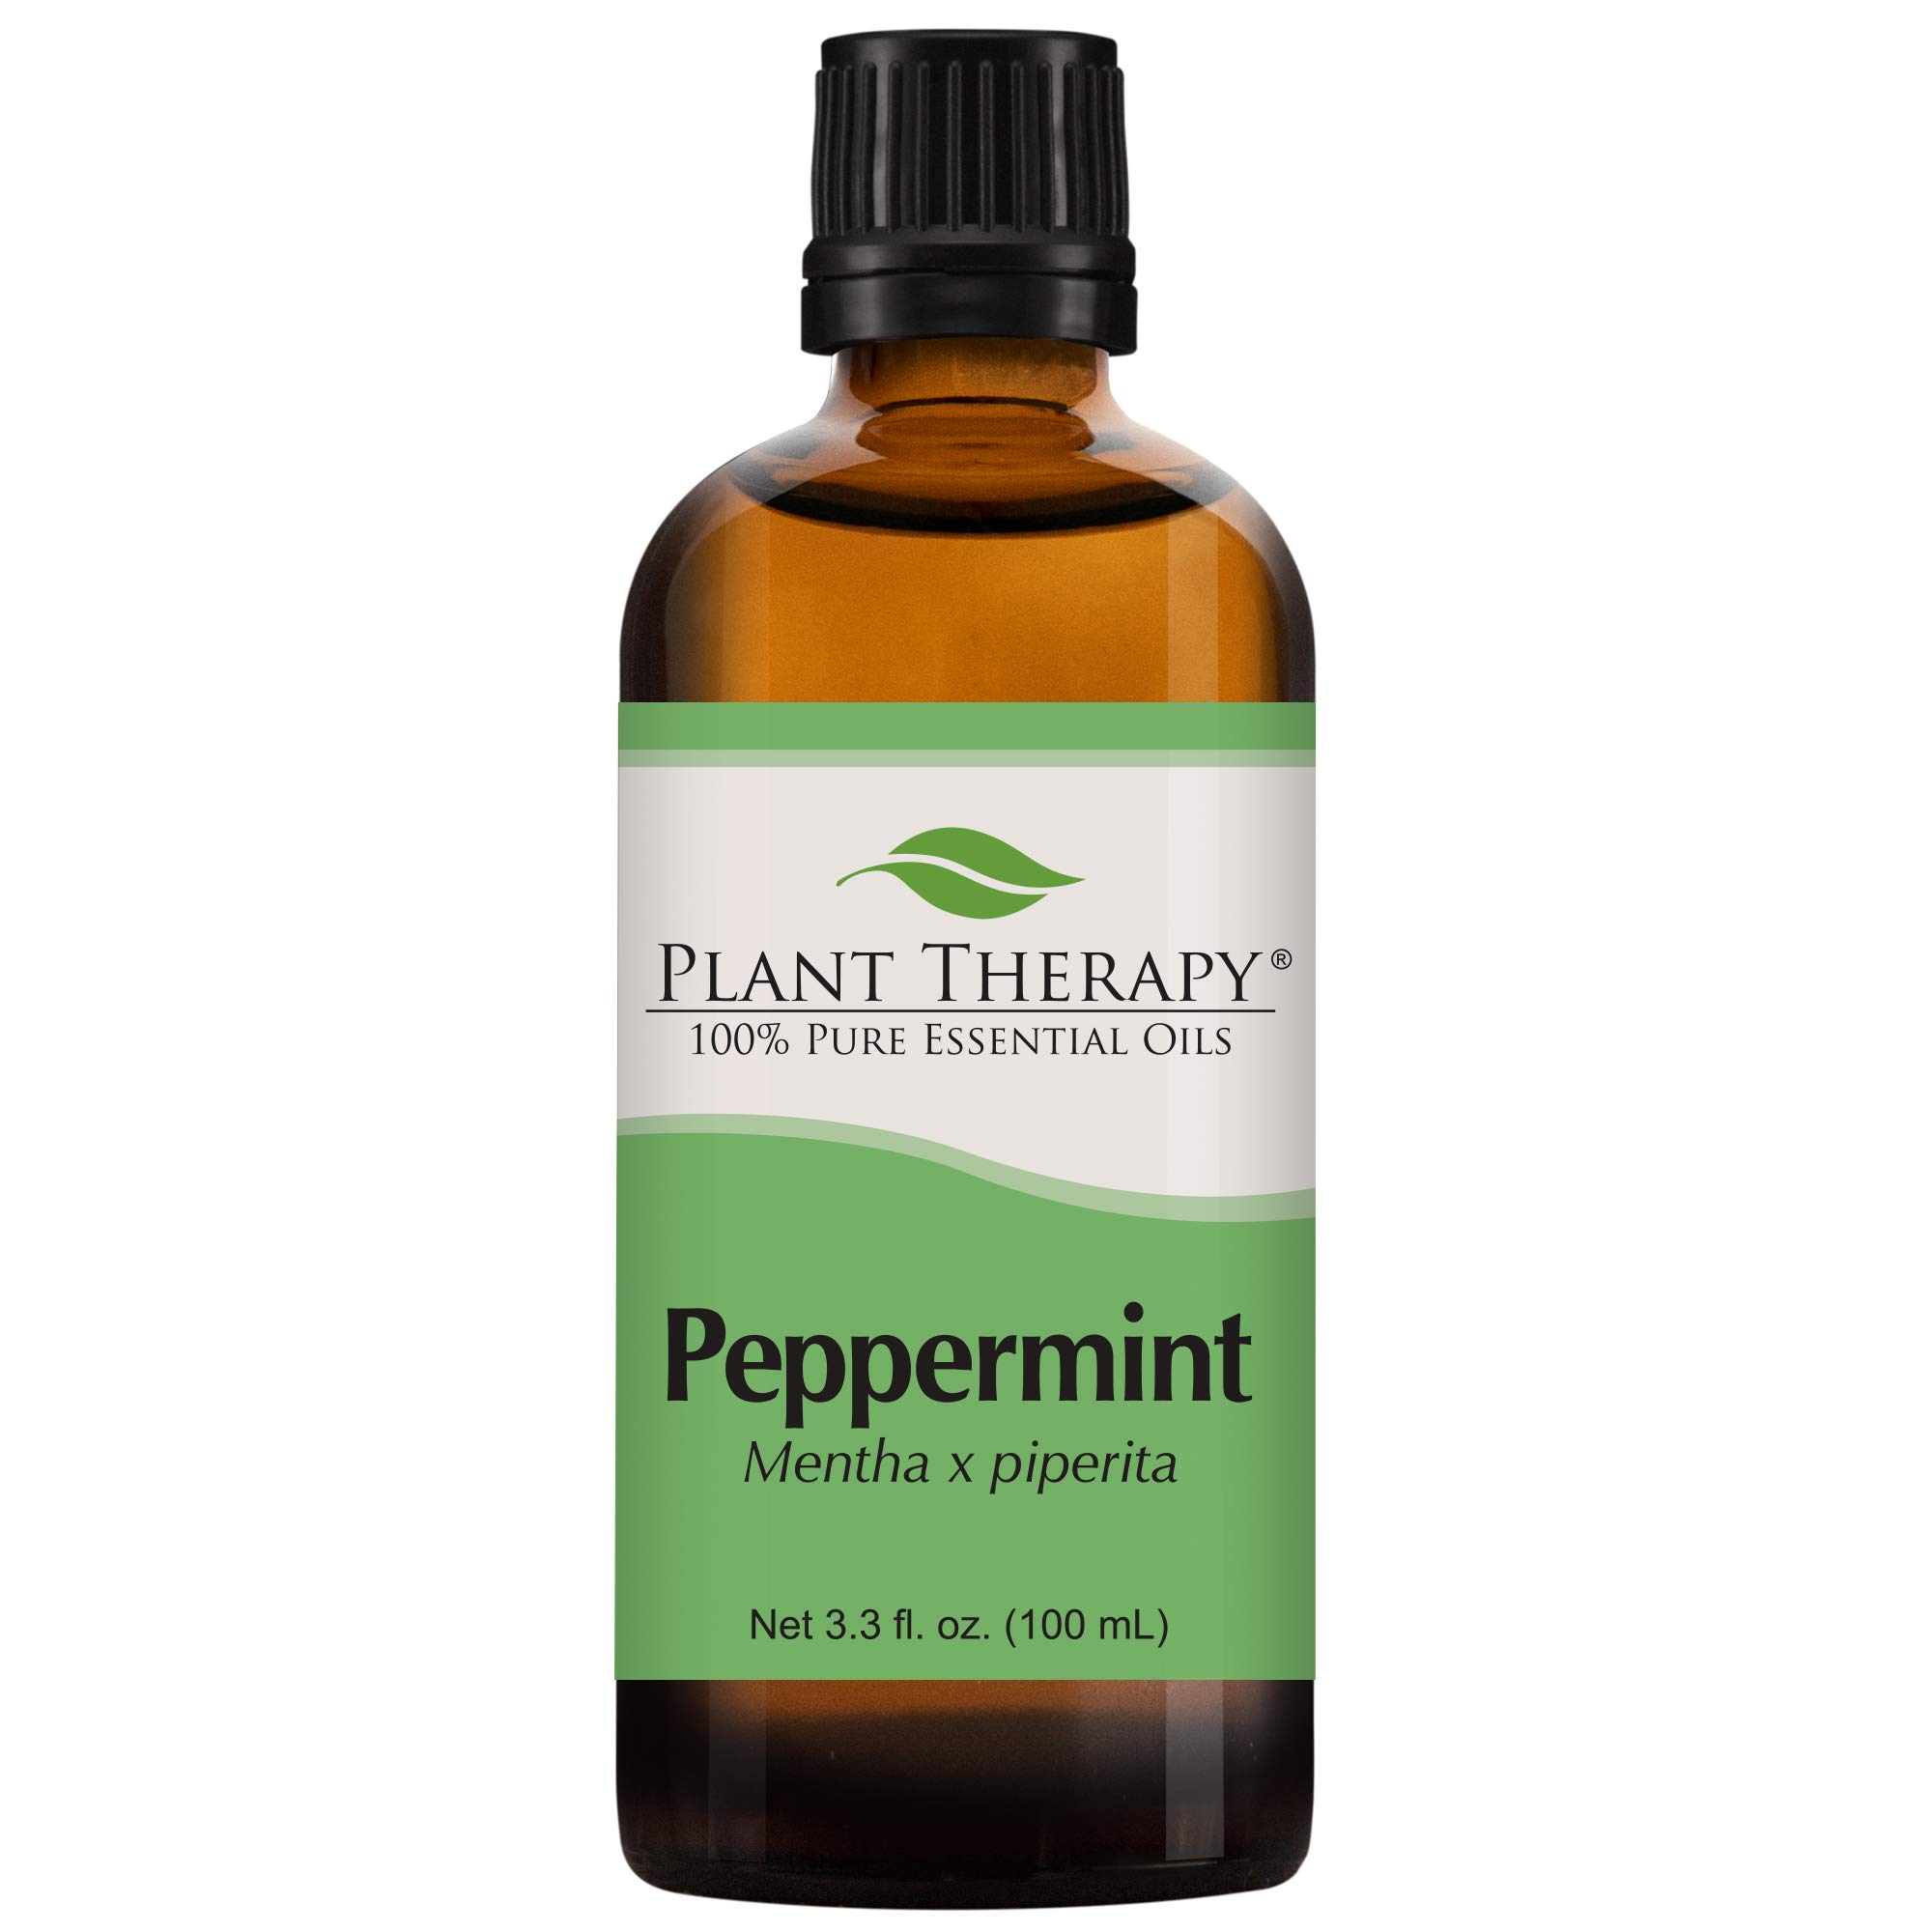 Plant Therapy Peppermint Essential Oil 100% Pure, Undiluted, Natural Aromatherapy, Therapeutic Grade 100 mL (3.3 oz) by Plant Therapy